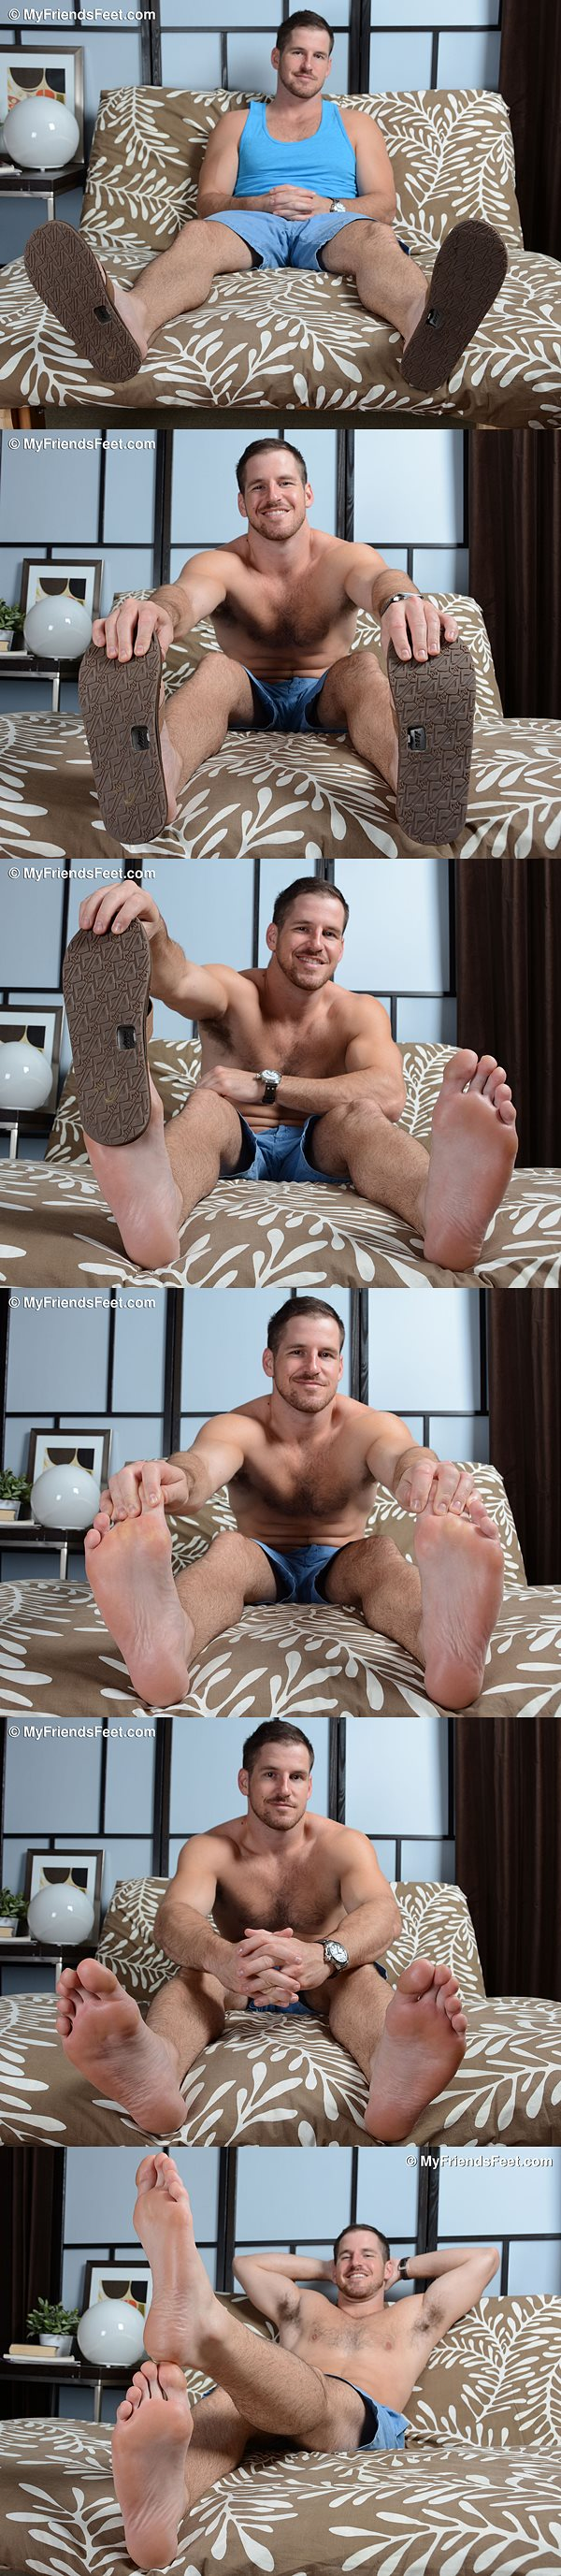 Sexy bearded hunk Chance Cruise at Myfriendsfeet